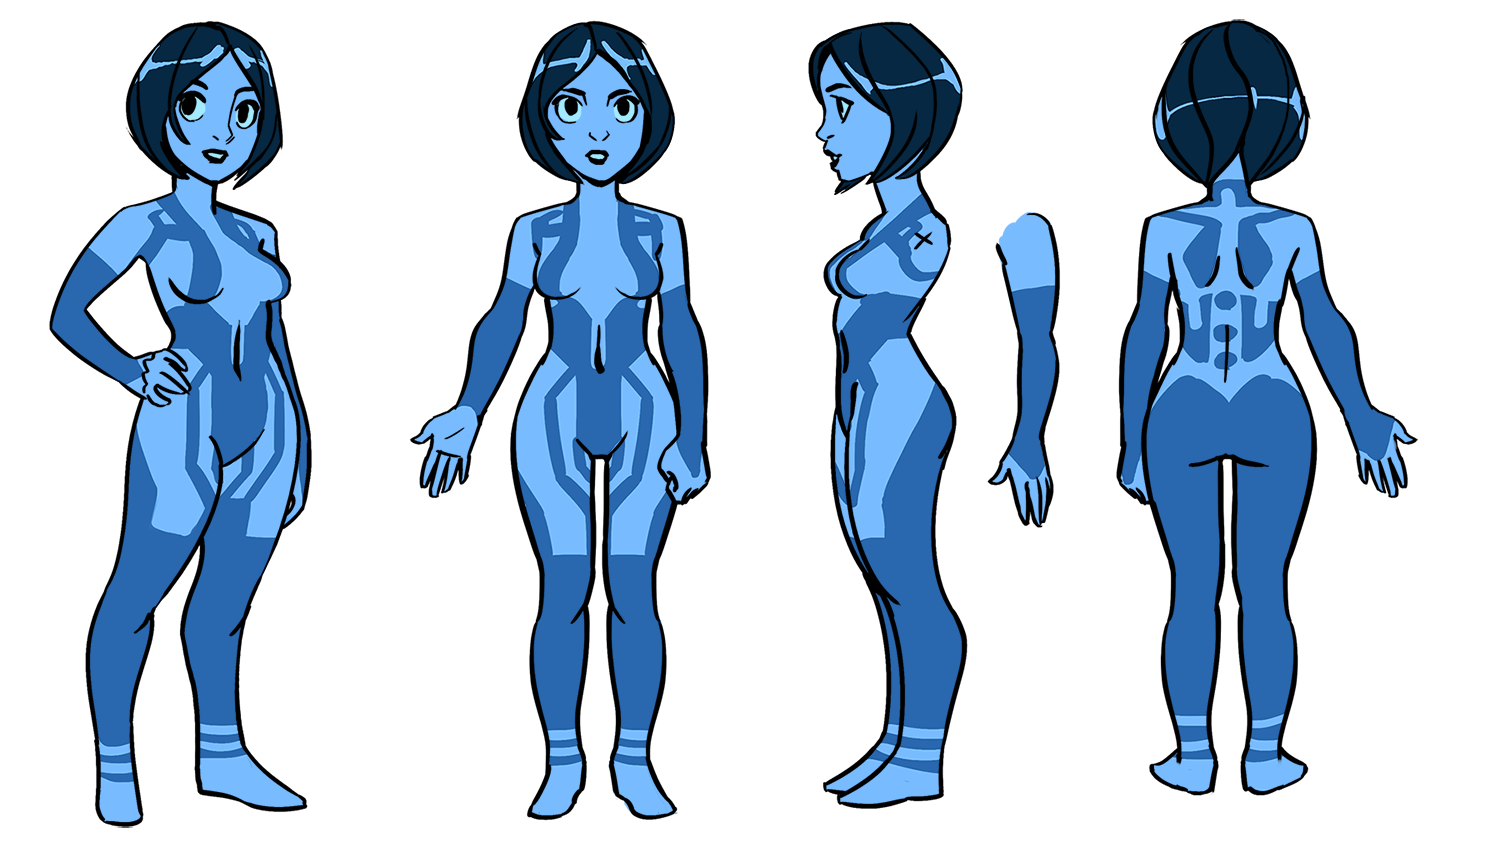 cortana_turnaround_by_makkon-d6mzzk7.png